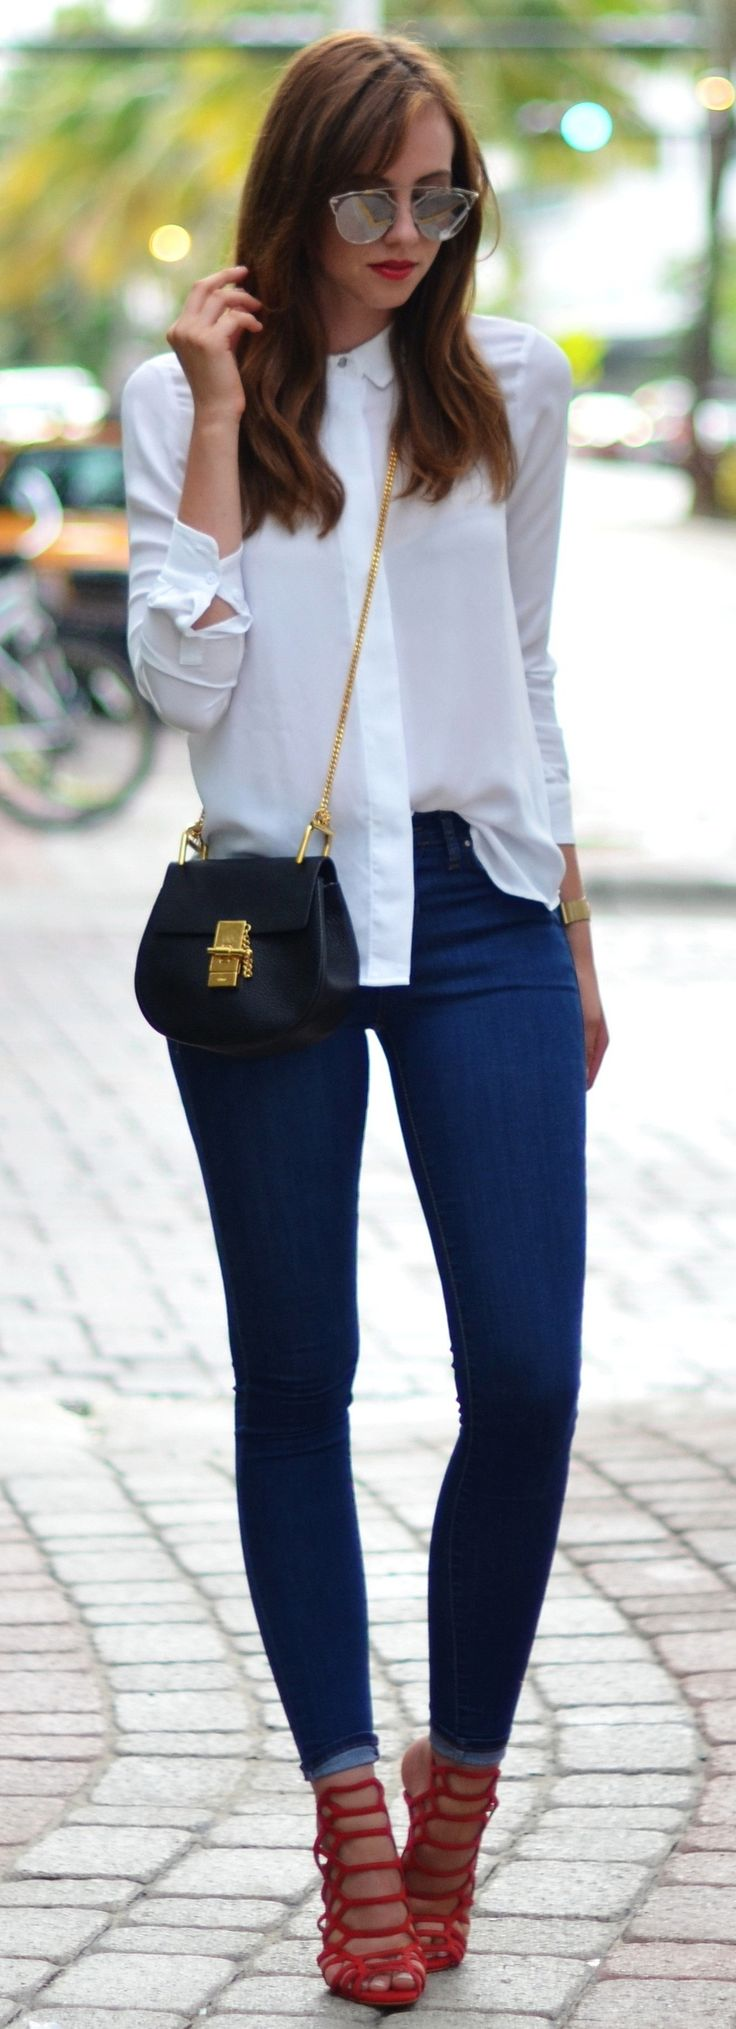 94763a2cb49 Best 25+ White jeans outfit ideas on Pinterest